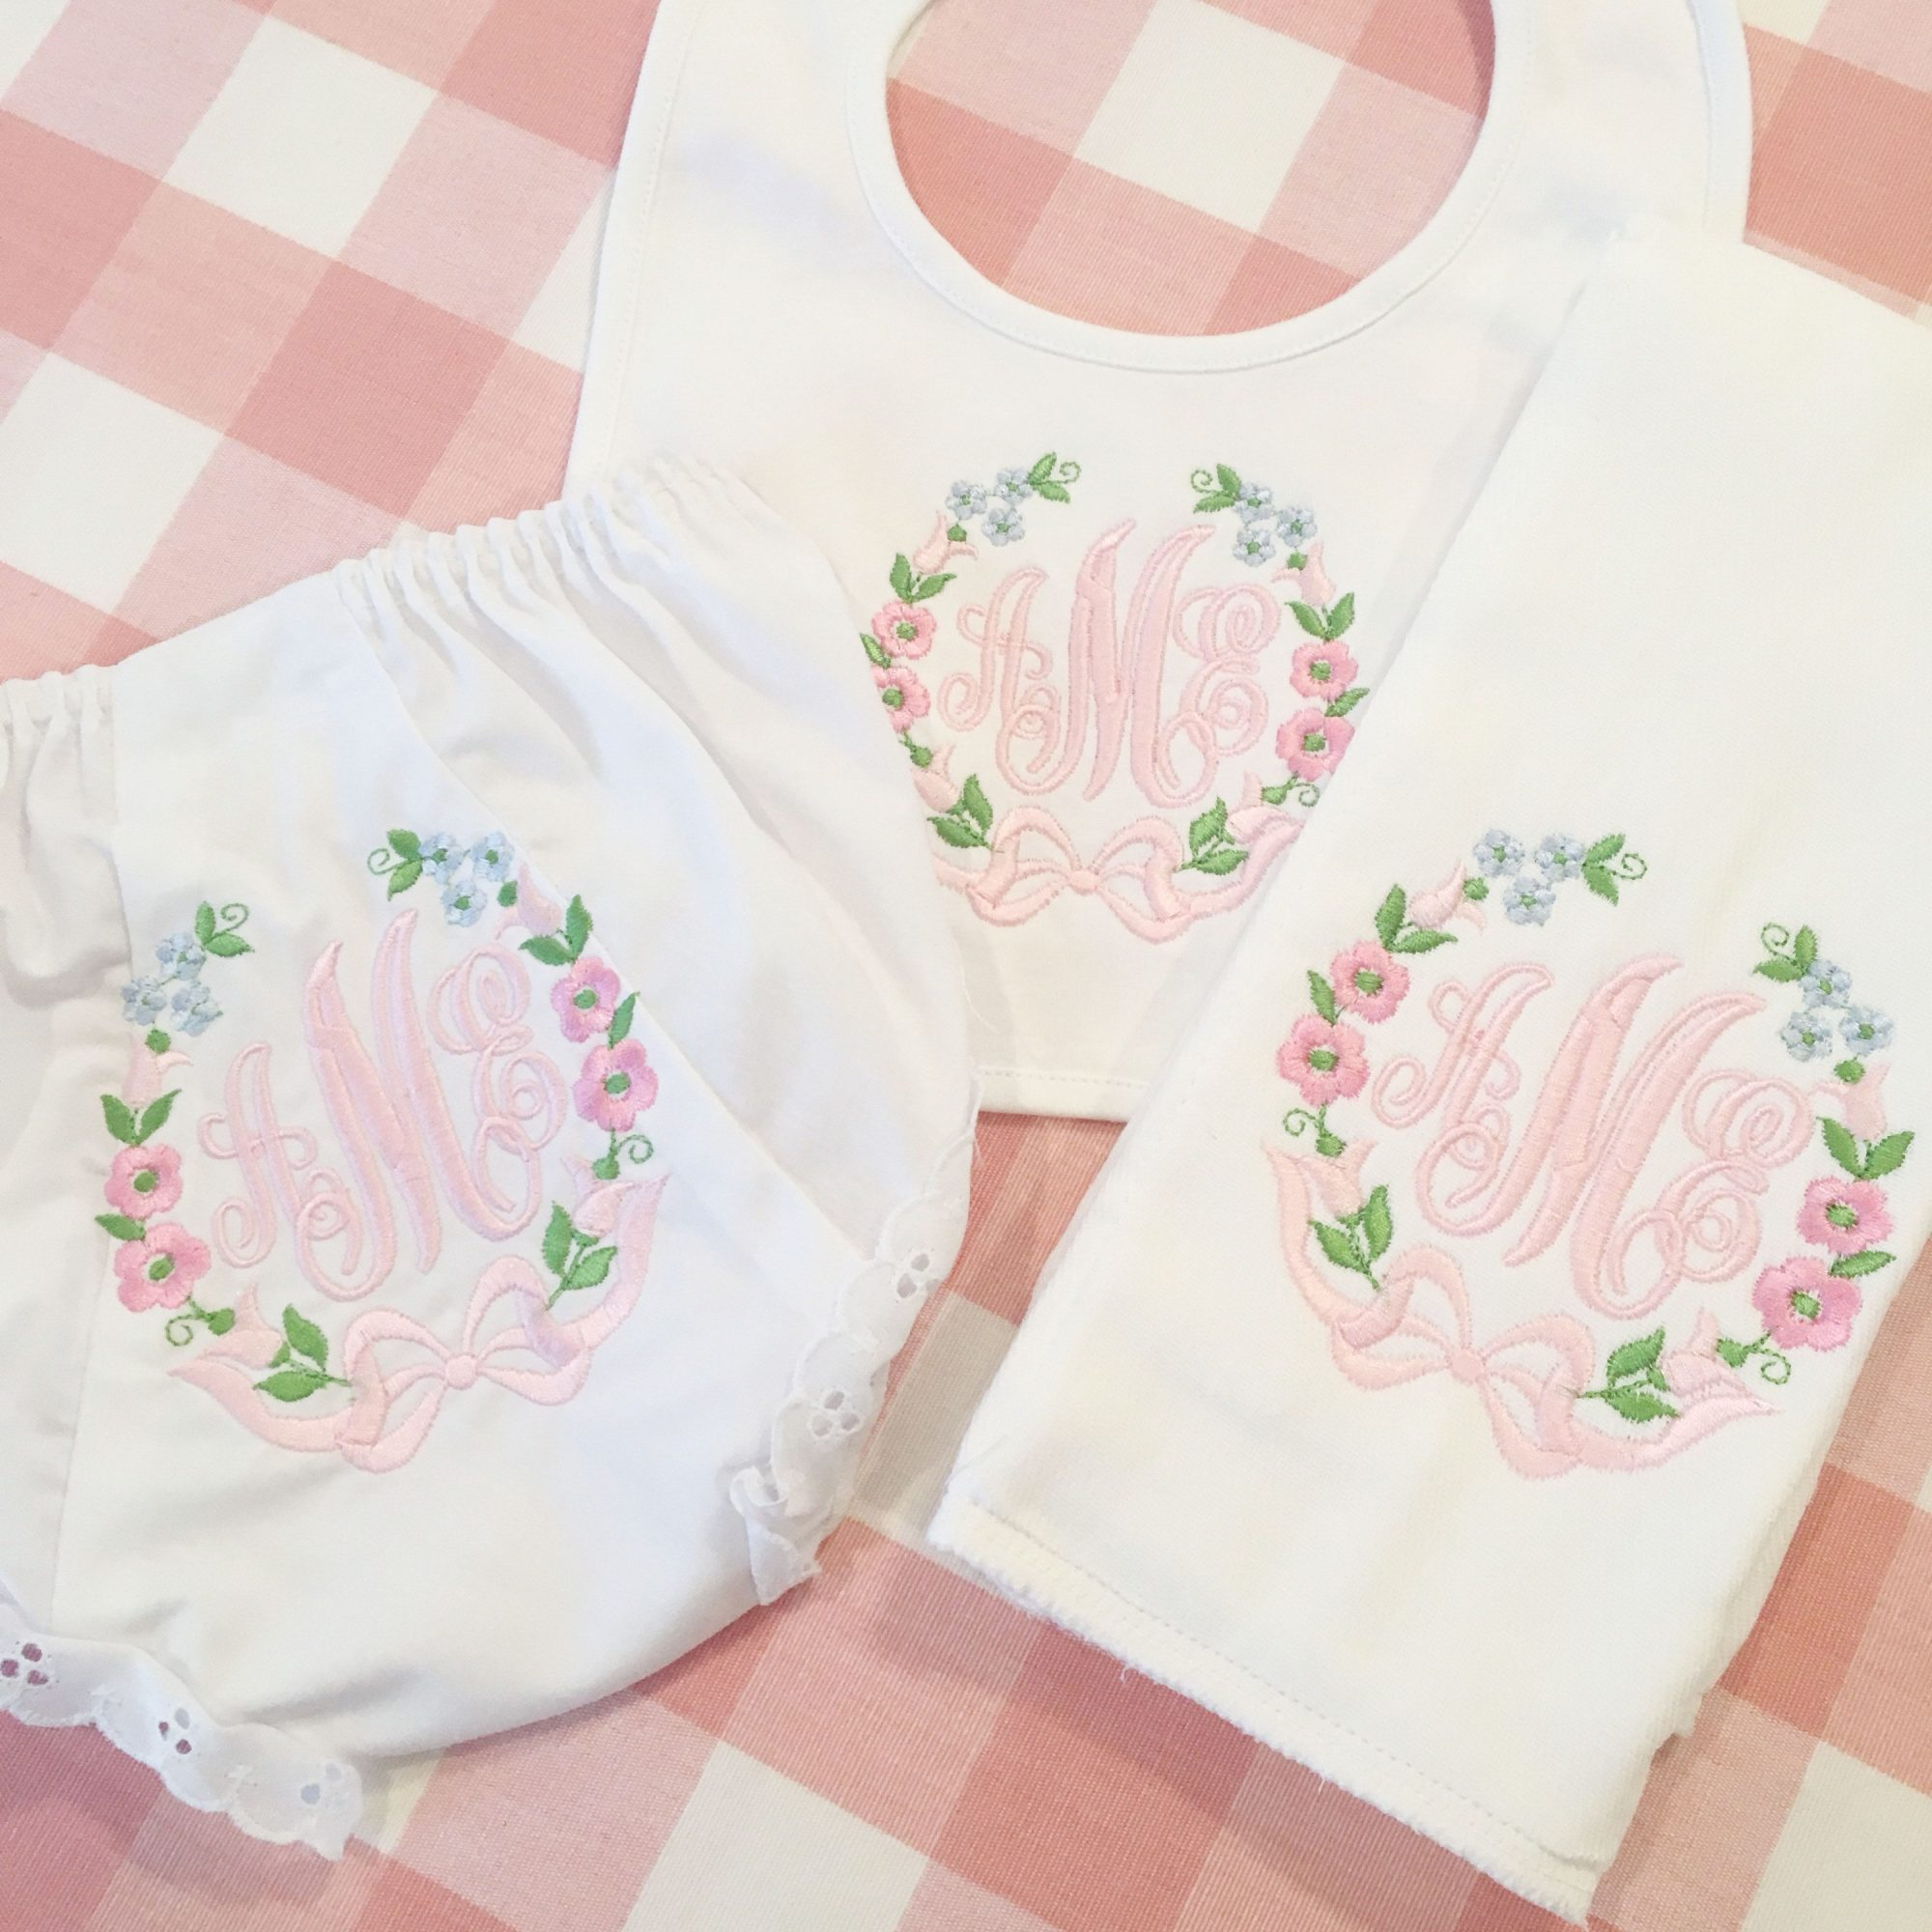 The Southern Baby Monogrammed Bloomer Set